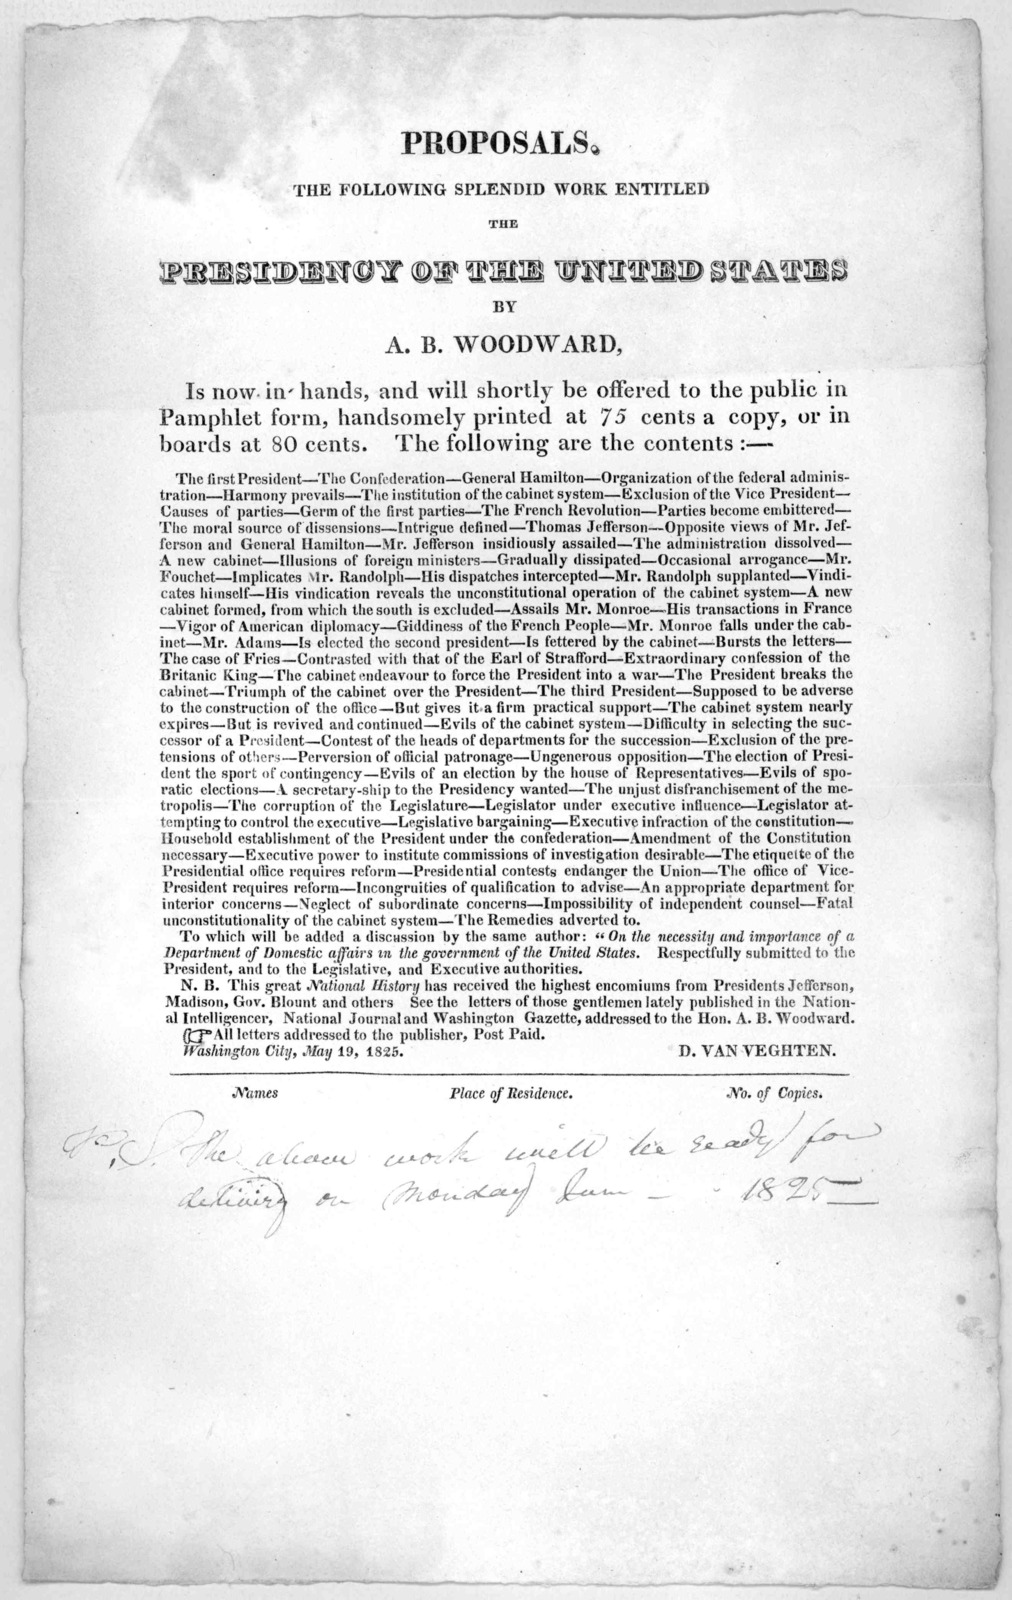 Proposals, the following splendid work entitled The Presidency of the United States by A. B. Woodward is now in hand, and will shortly be offered to the public in pamphlet form ... Washington City, May 19, 1825.